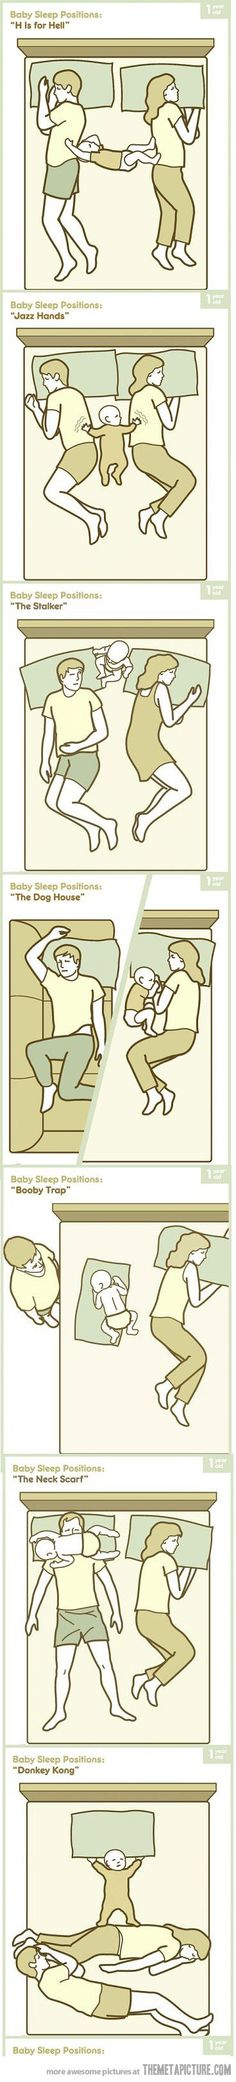 Baby sleep positions -- lol, sad but true! they may be cute but they sure are bed hogs.